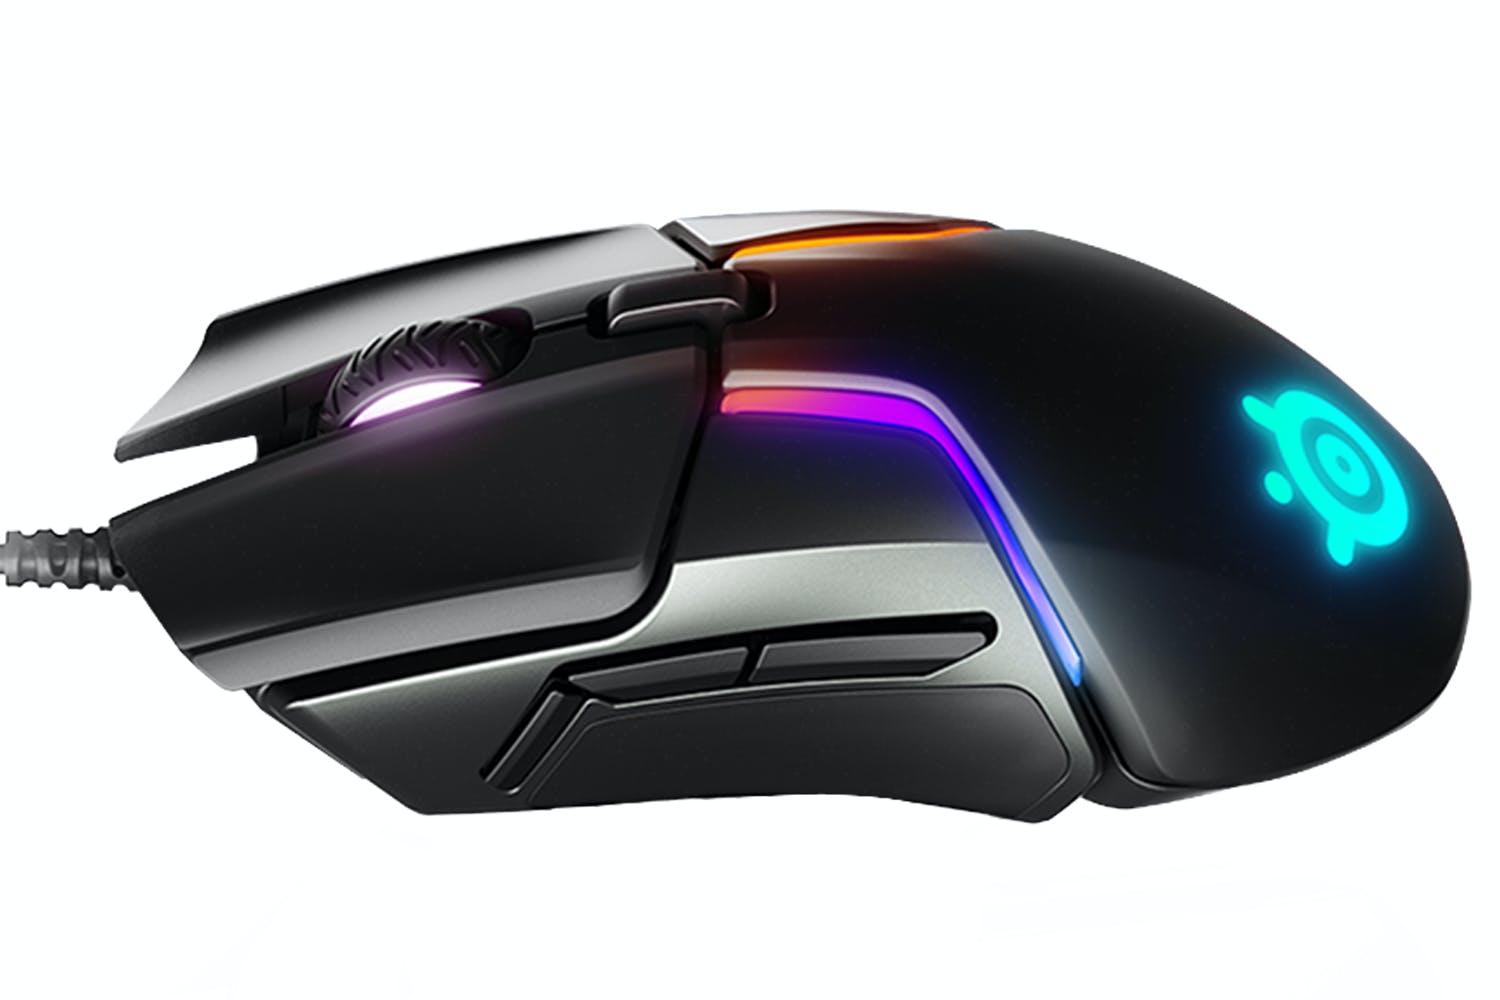 SteelSeries Rival 600 Optical Gaming Mouse | Black